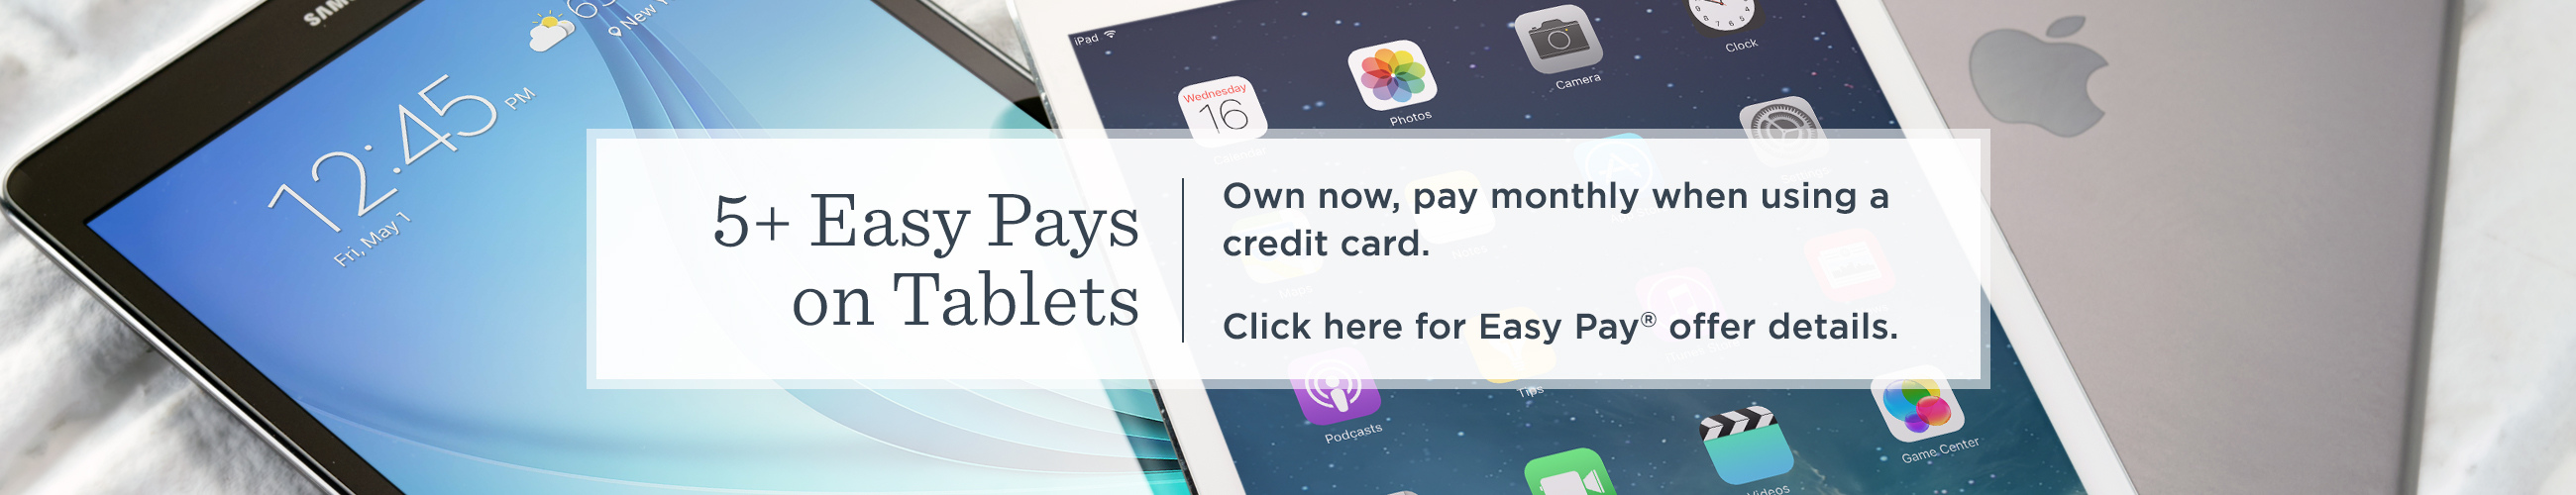 5+ Easy Pays on Tablets. Own now, pay monthly when using a credit card.